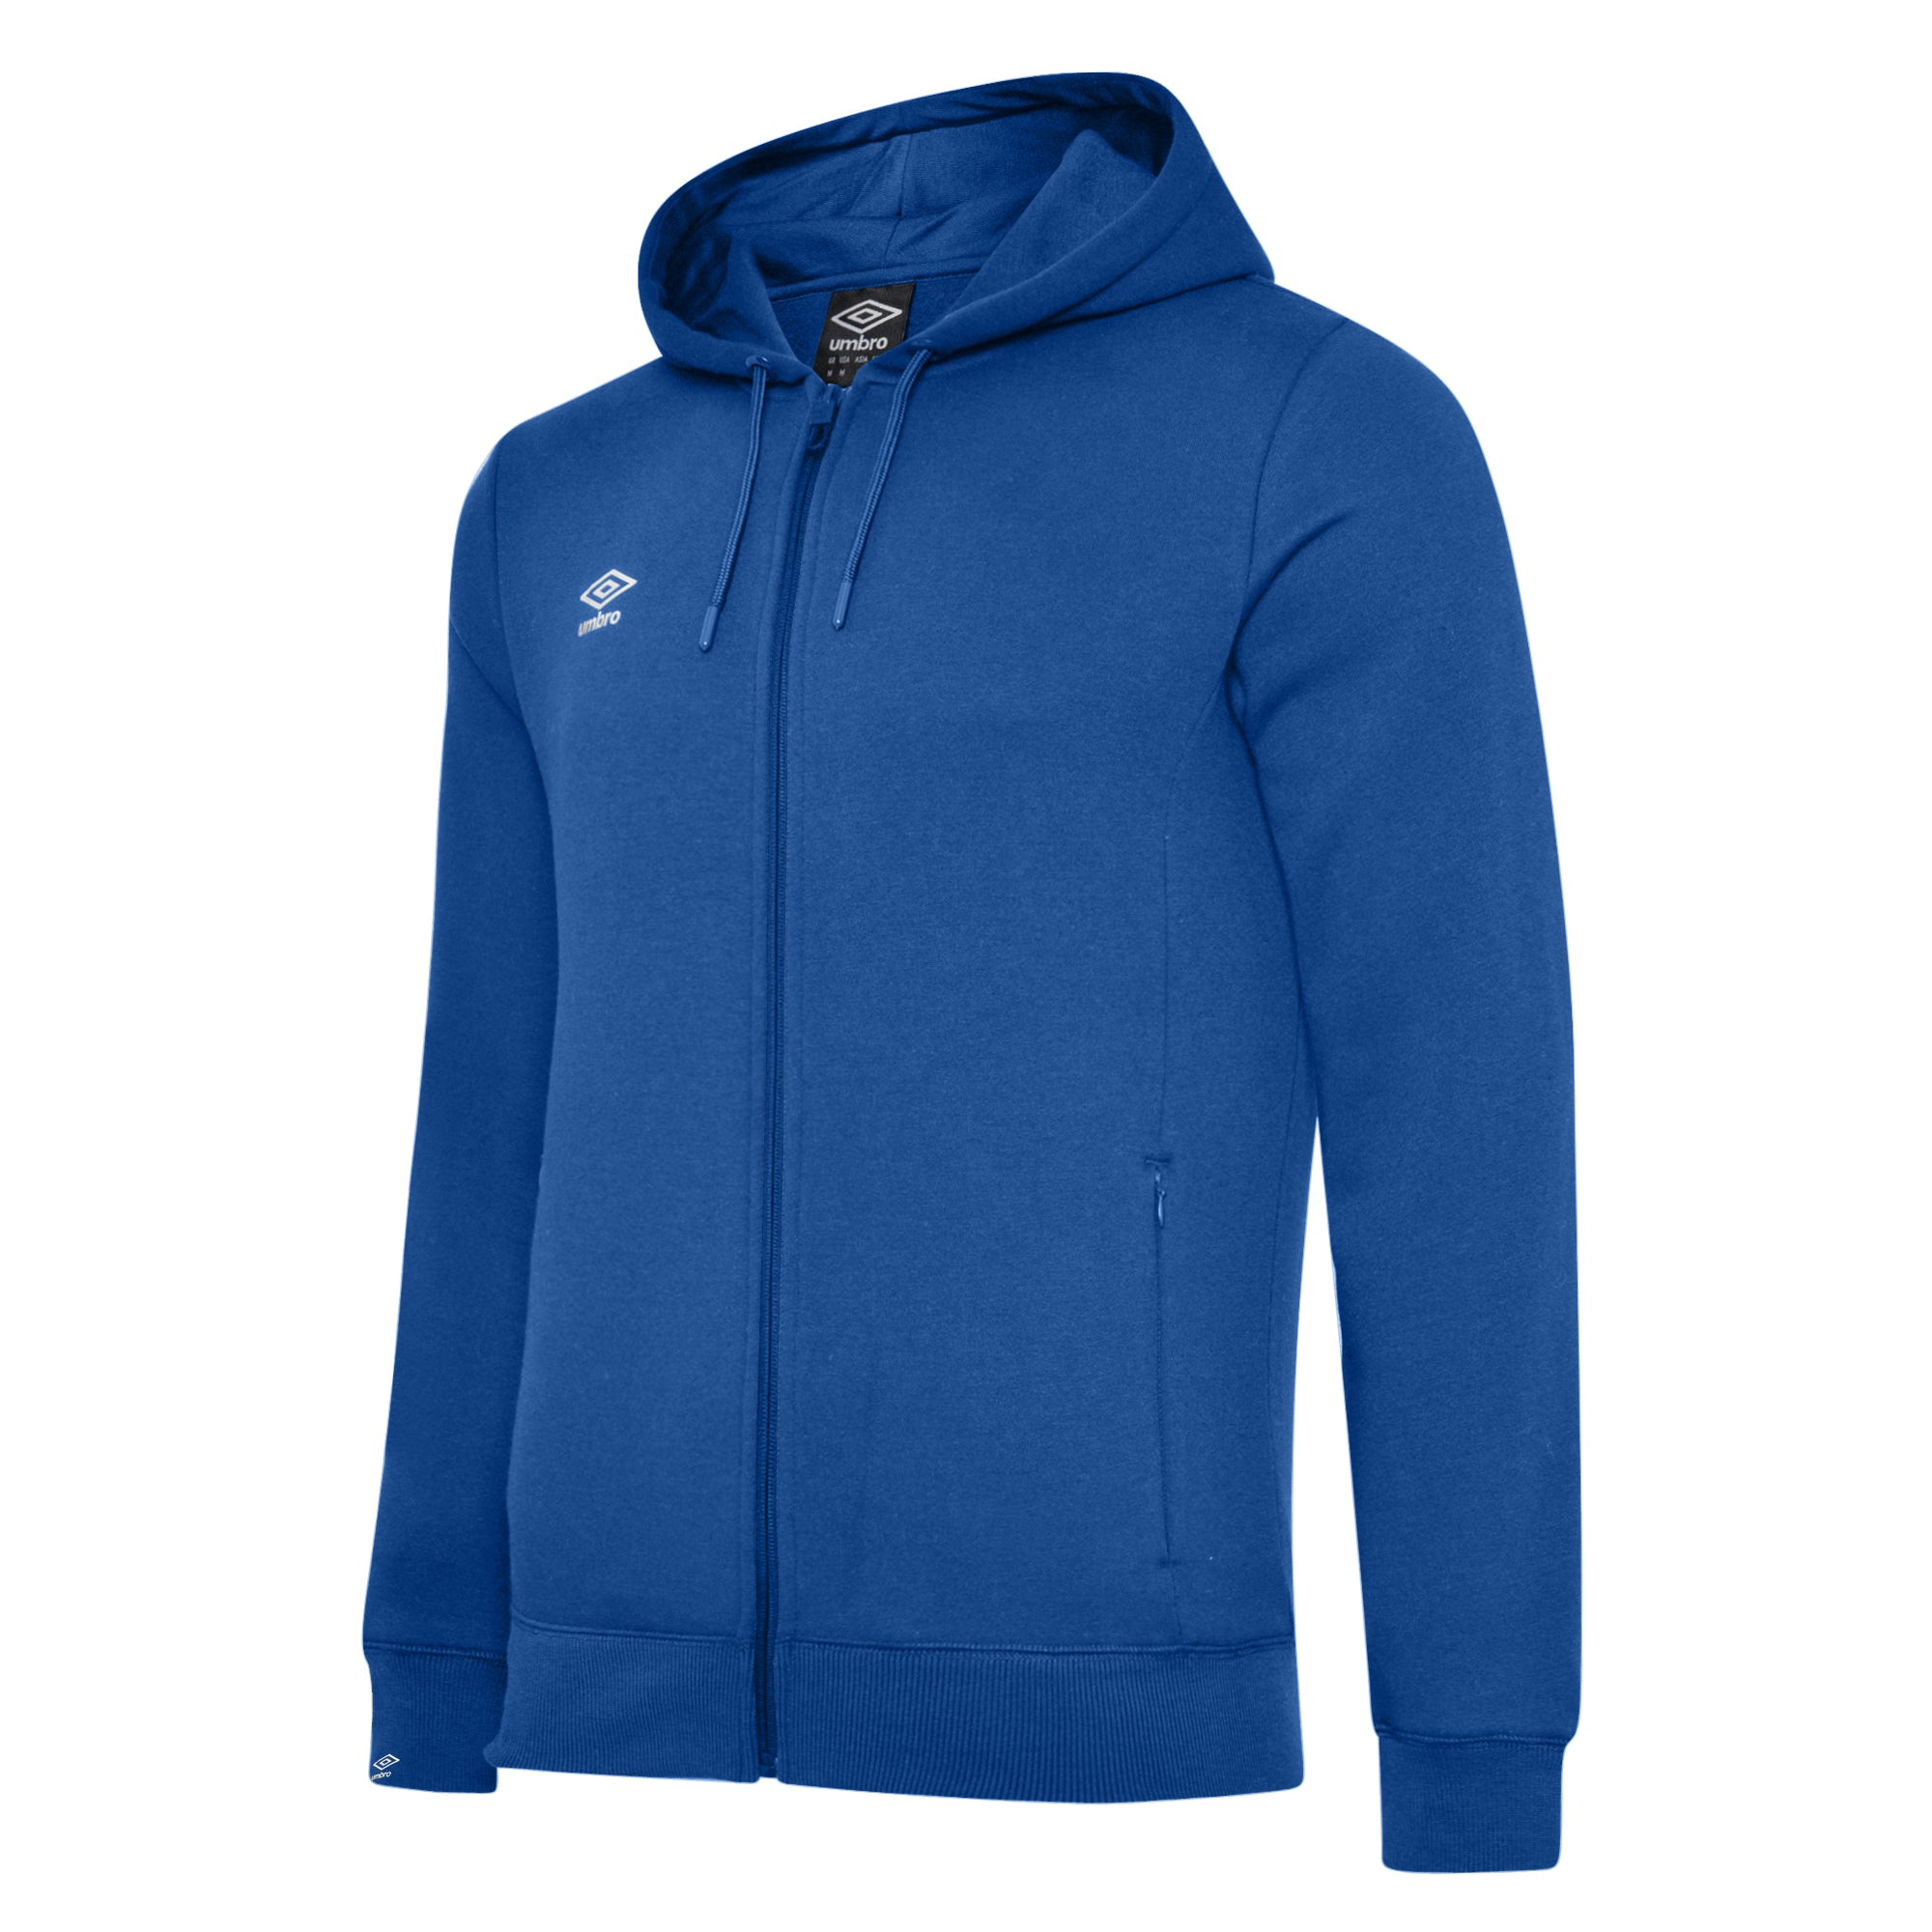 Umbro Club Leisure Zipped Hoody - TW Royal/White